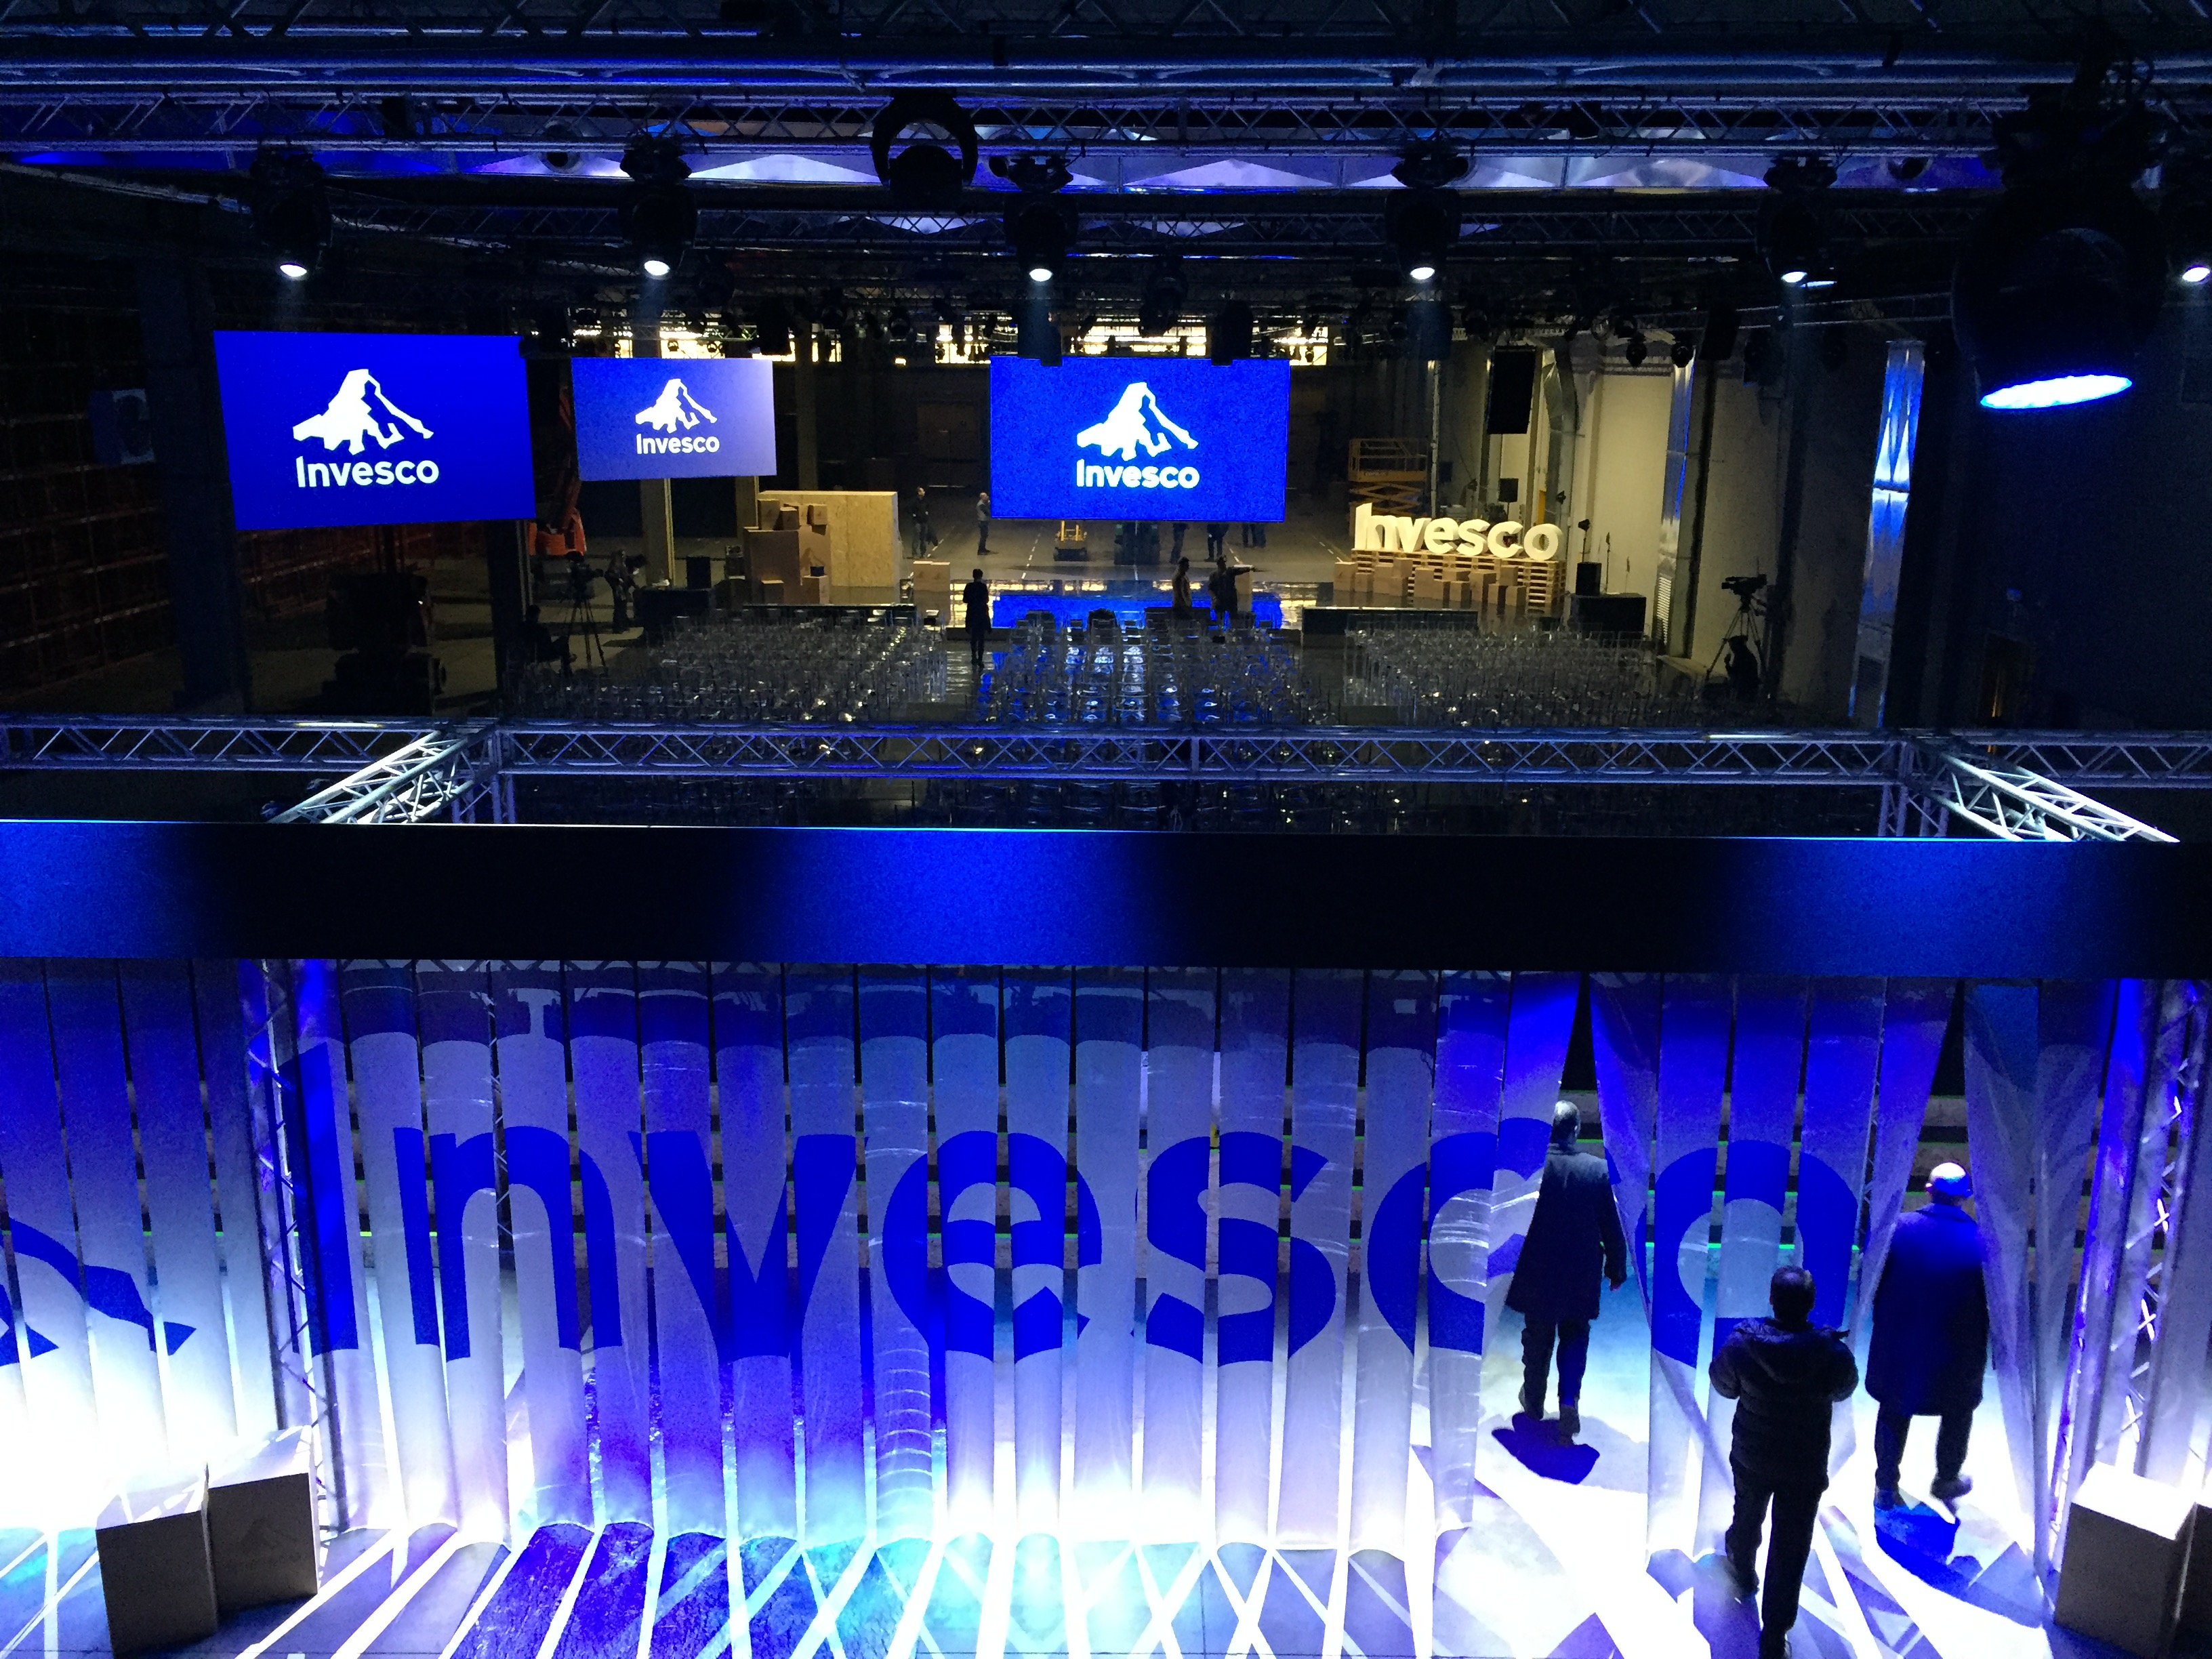 INVESCO - Corporate event          in via Watt - 4